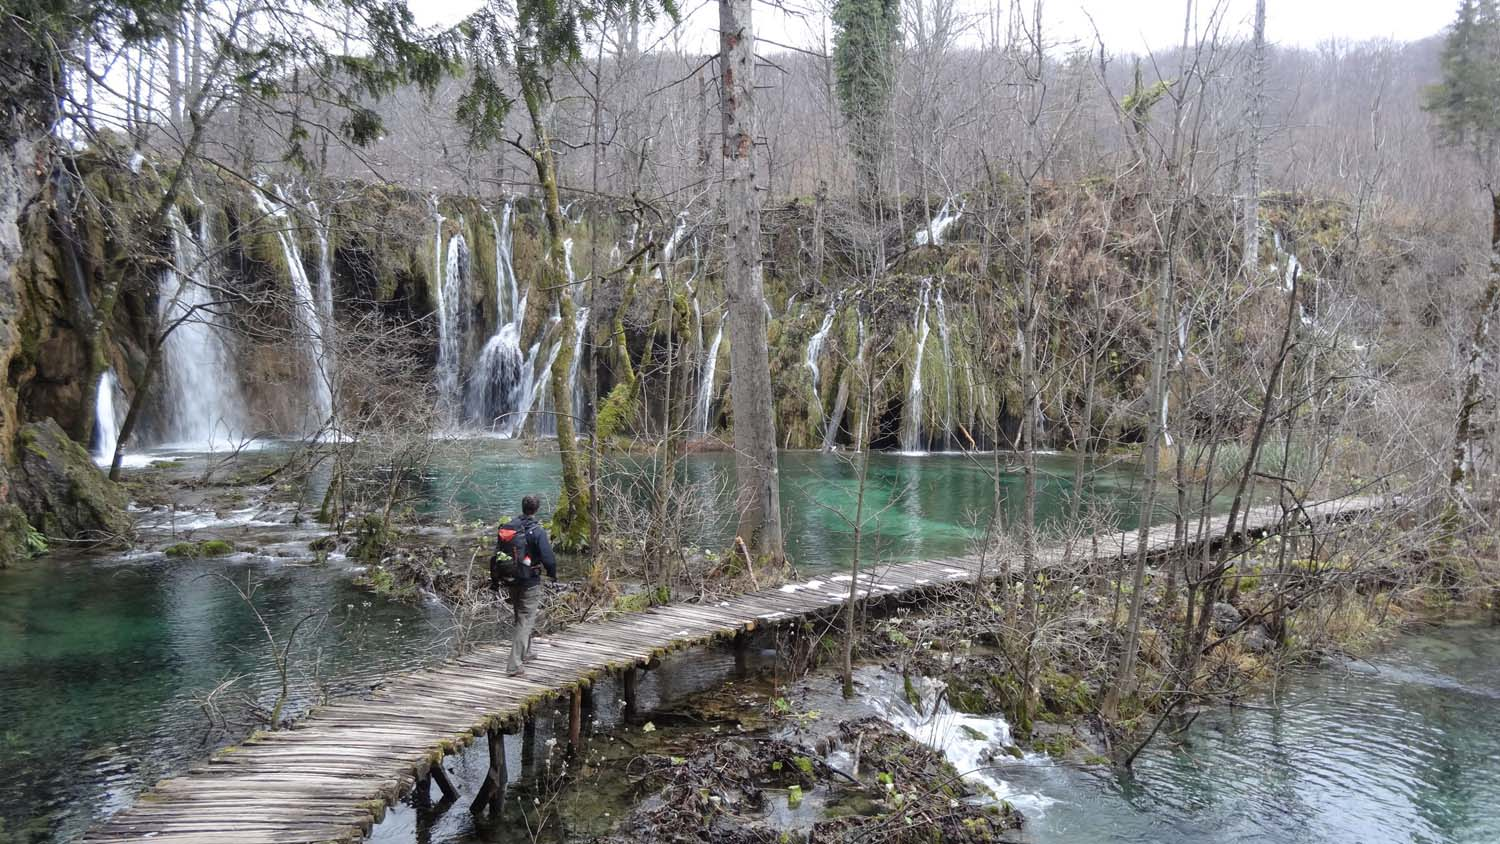 our favourite spot at the Plitvice Lakes